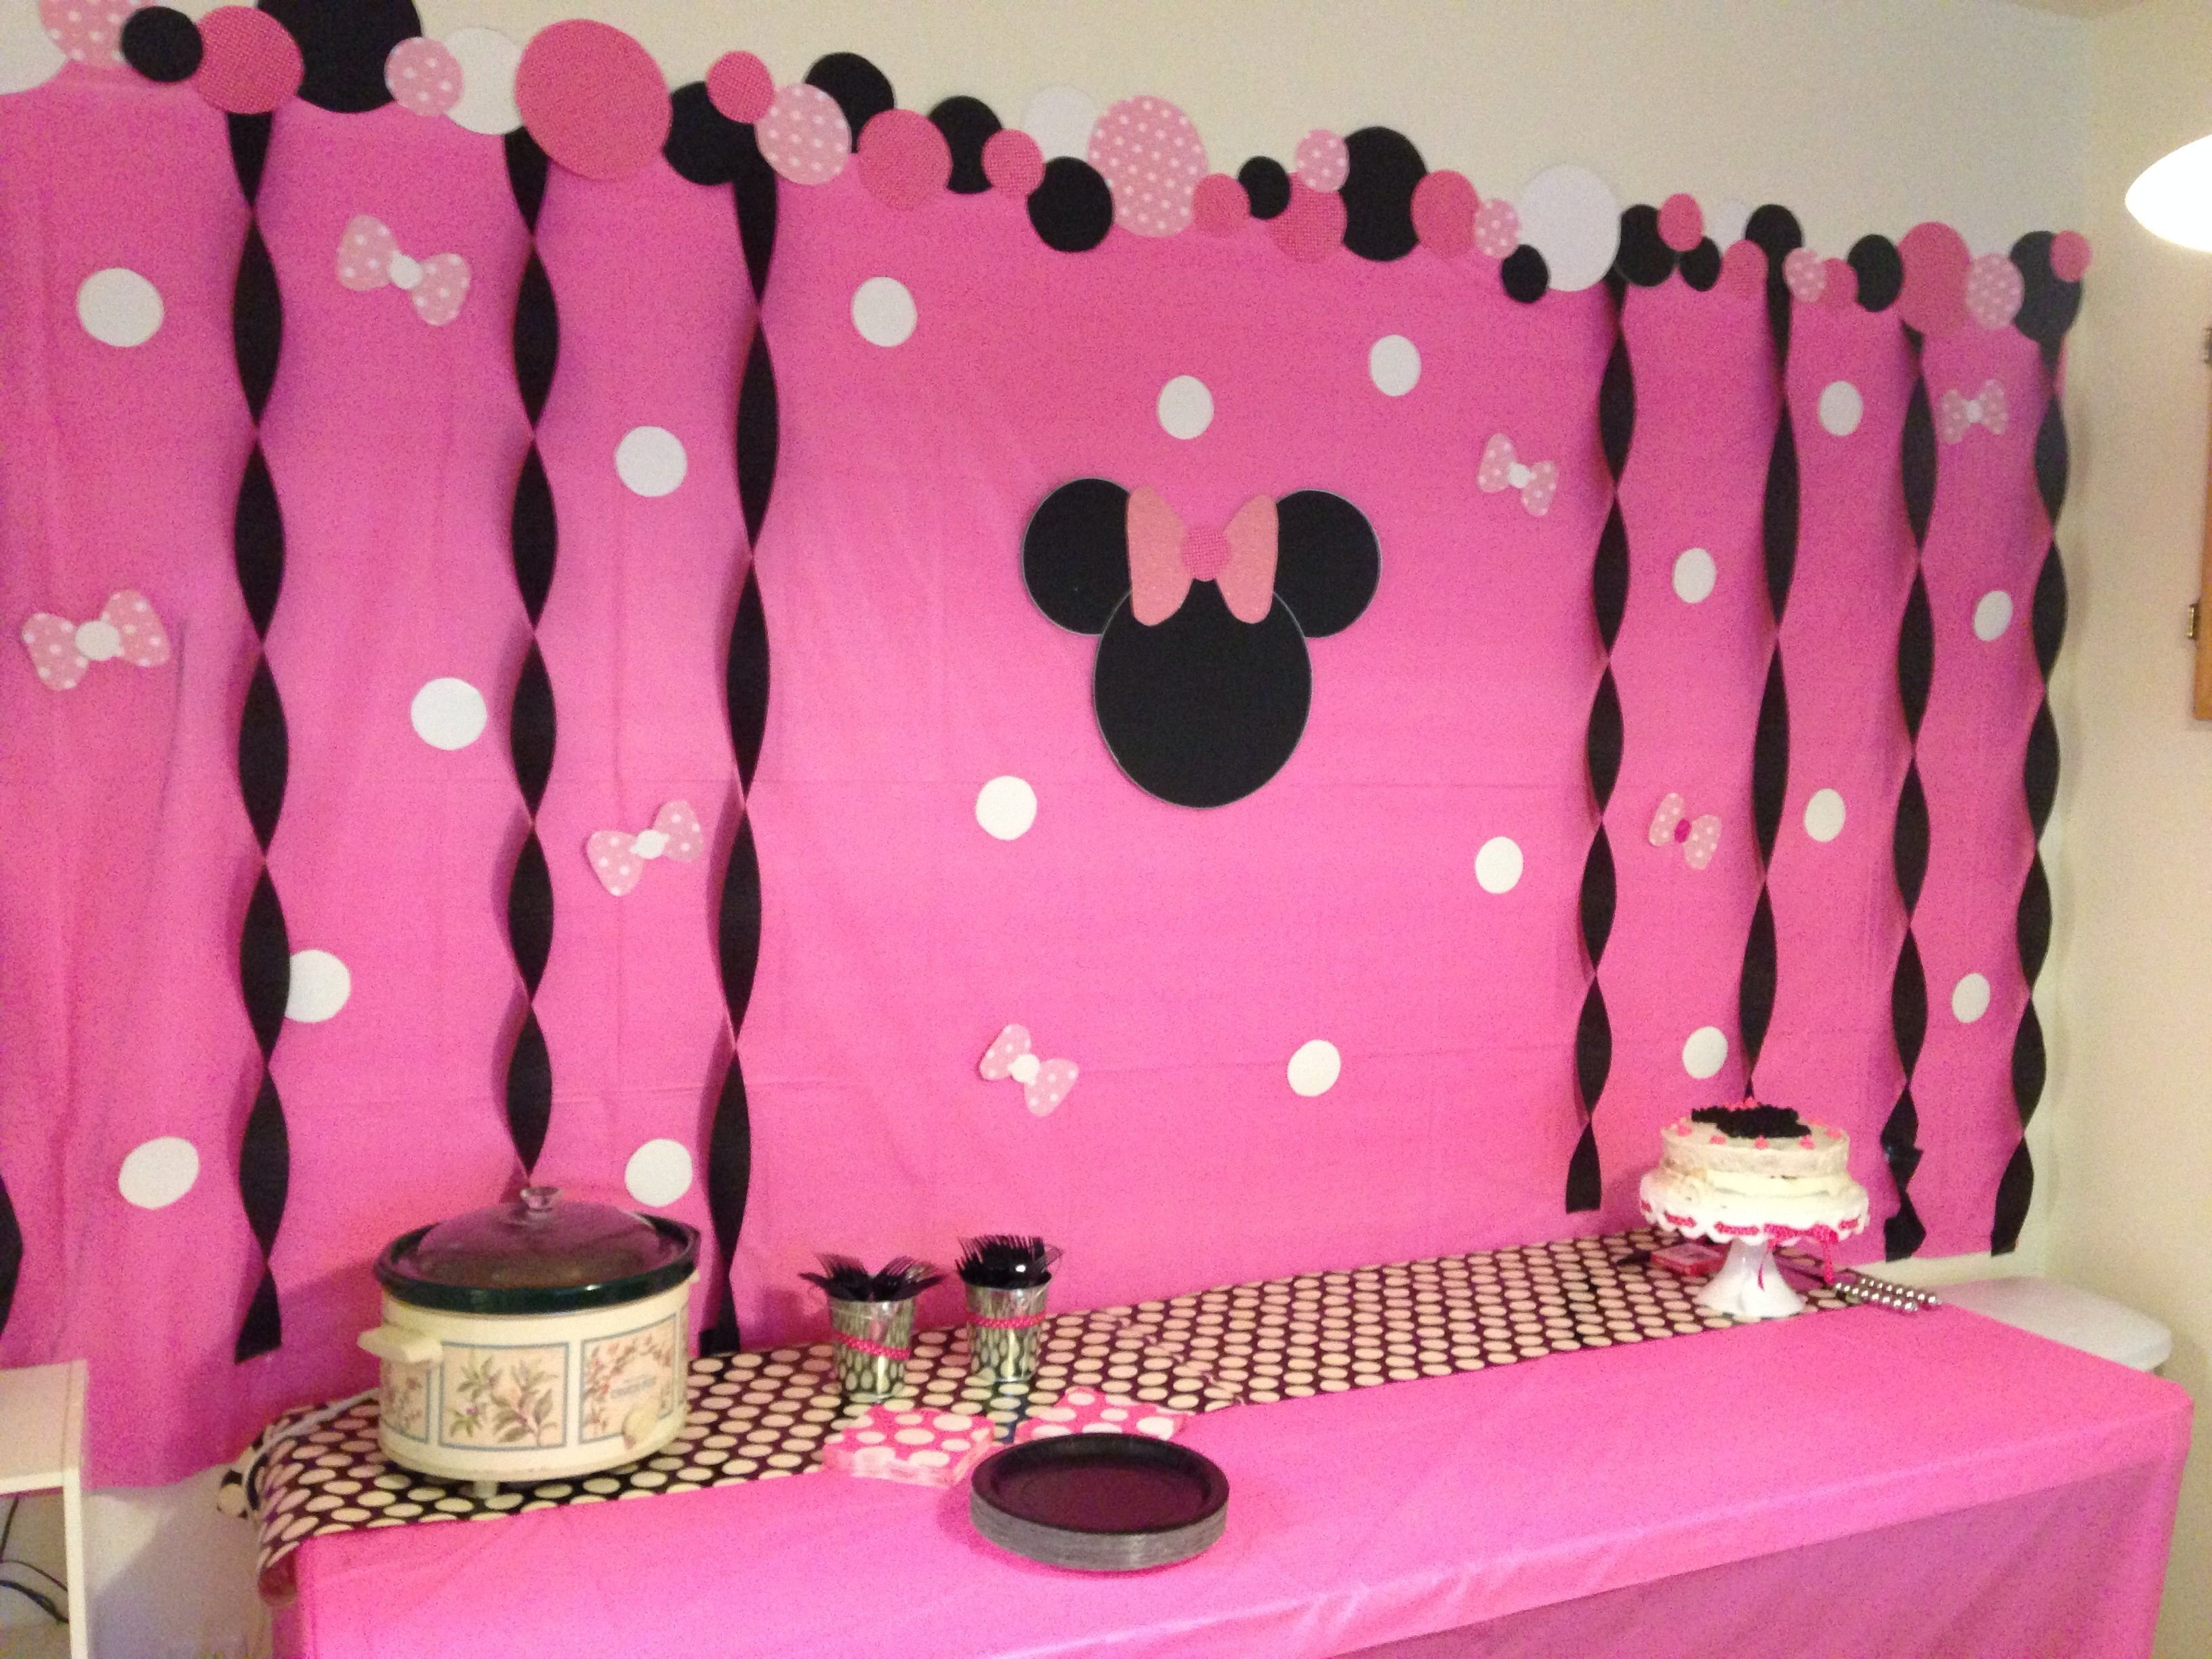 10 Wonderful Minnie Mouse Ideas For Birthday Party madisons minnie mouse birthday party diy backdrop look what i 5